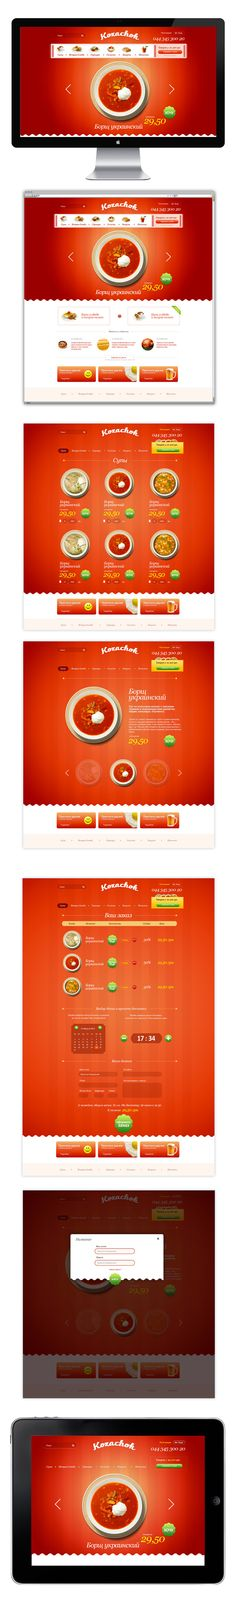 Kozachok online food shop by Apostol Nikolay, via Behance  http://www.techirsh.com